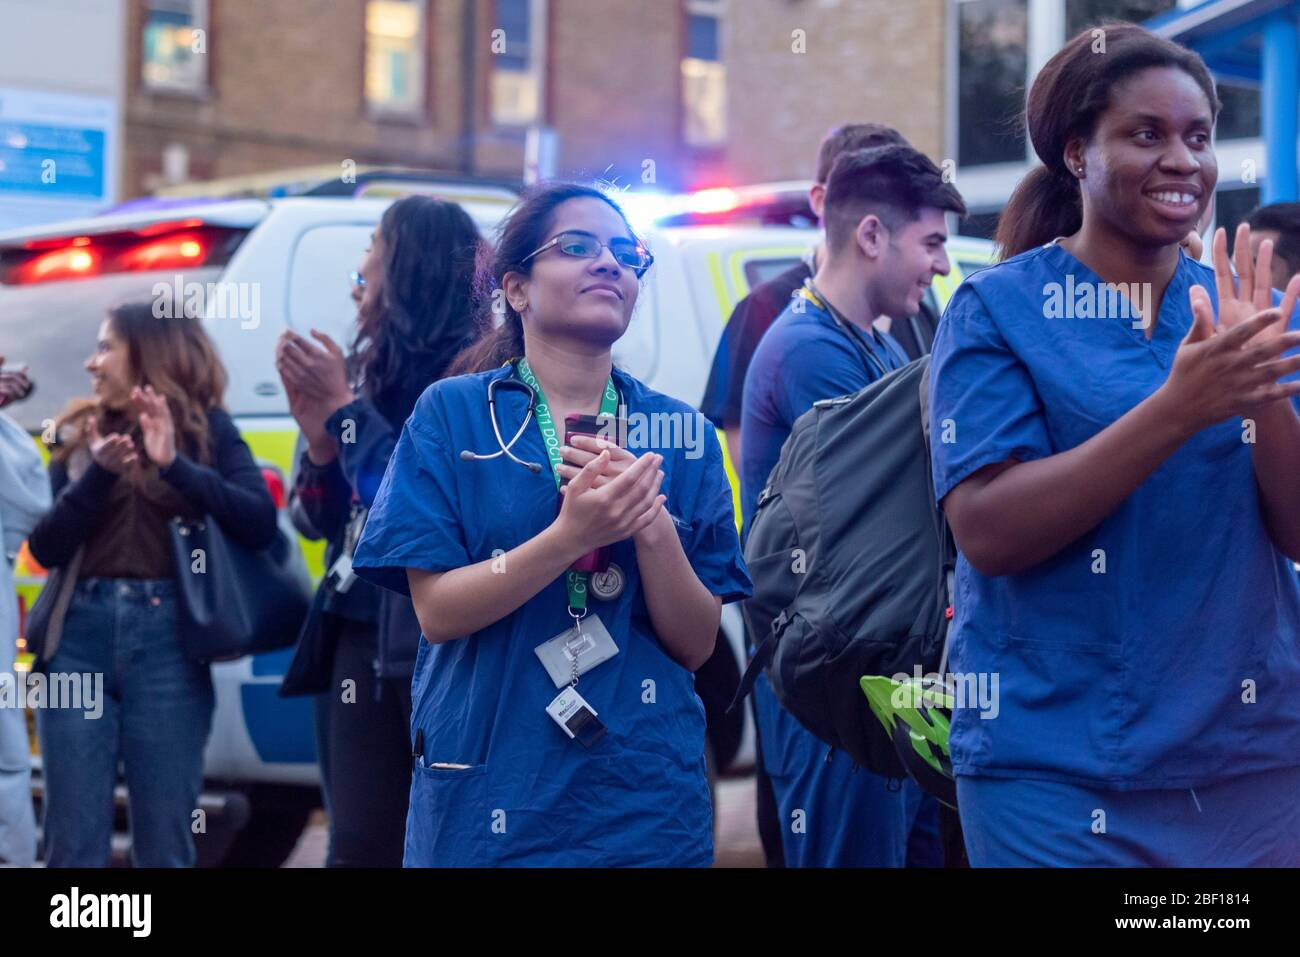 southend-university-hospital-southend-on-sea-essex-uk-16th-apr-2020-police-fire-breakdown-crews-and-health-services-gathered-outside-of-the-entrance-to-southend-hospital-to-join-in-with-the-clap-for-carers-now-regularly-being-held-at-8pm-every-thursday-evening-in-the-uk-to-thank-nhs-and-key-workers-during-the-covid-19-coronavirus-pandemic-nhs-staff-gathered-outside-to-receive-and-join-in-with-the-applause-2BF1814.jpg